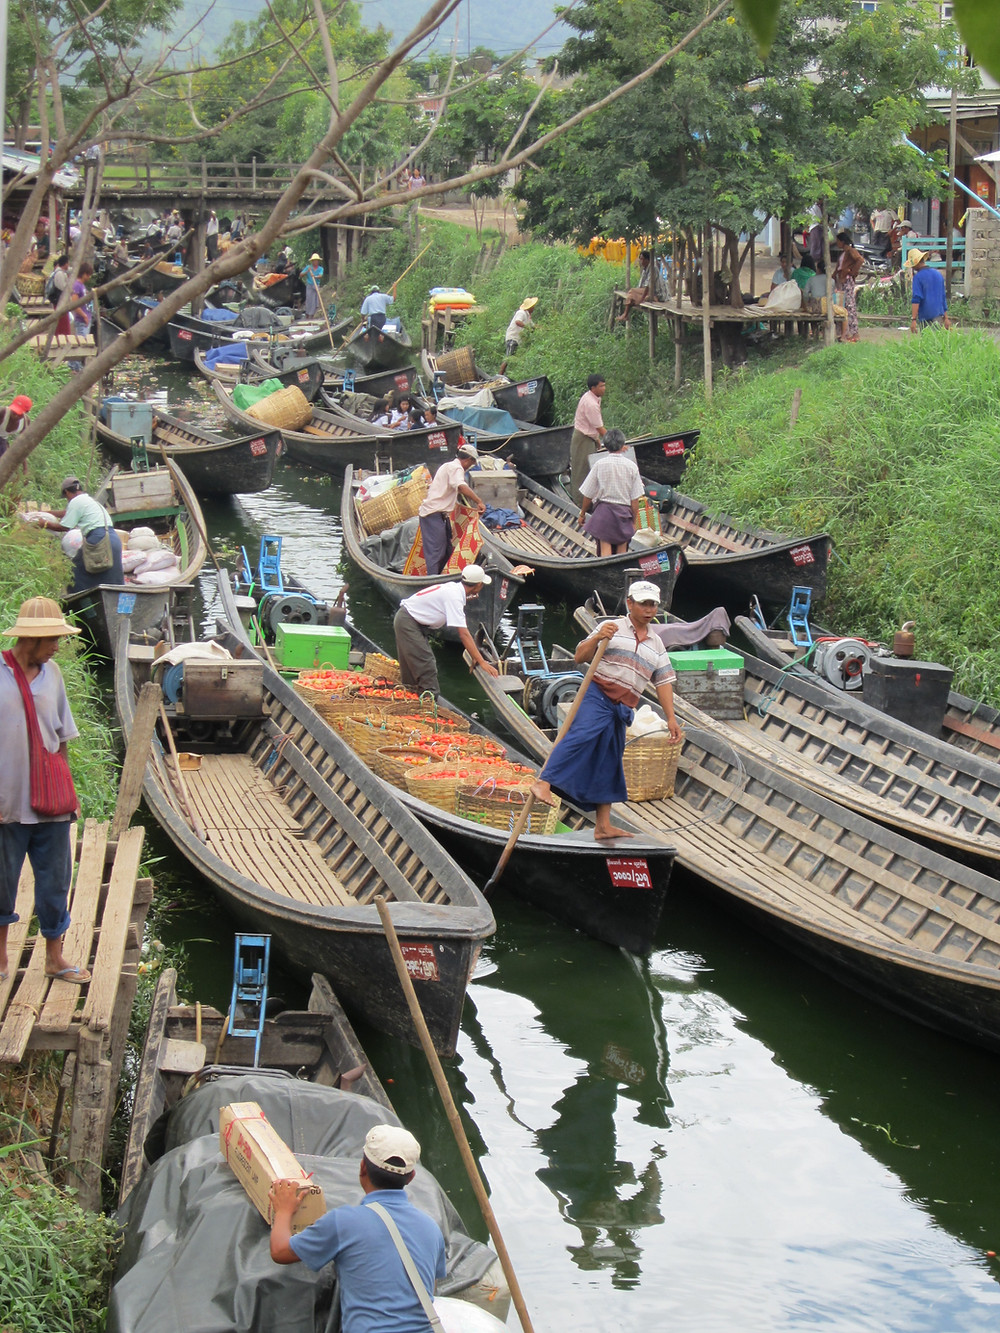 This small canal is used by locals to bring their products to market